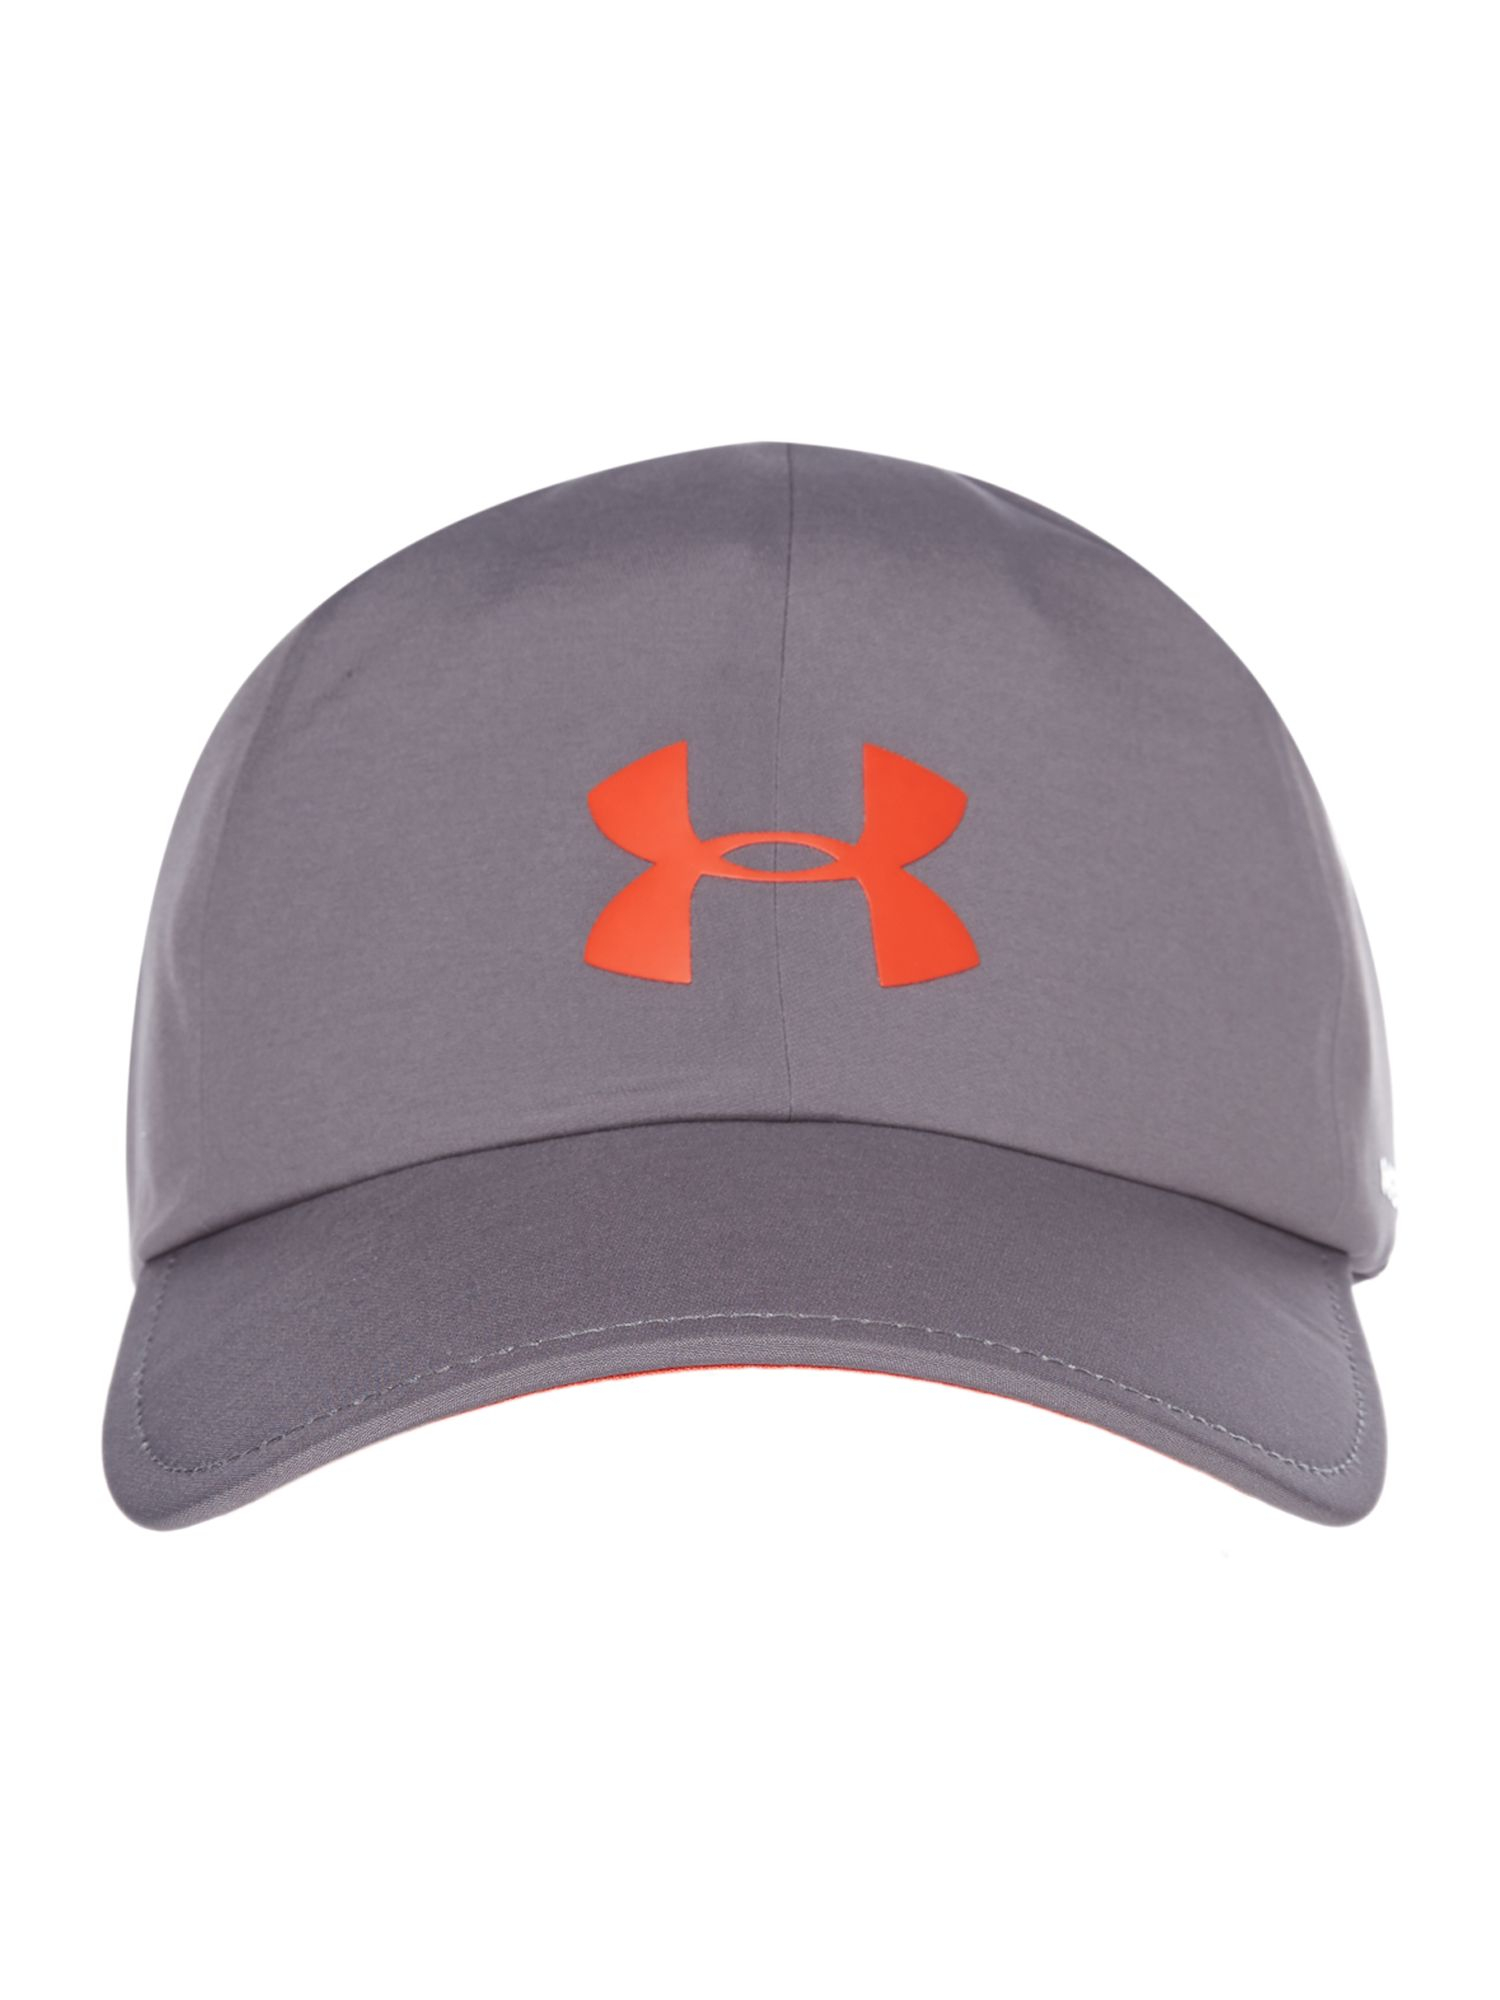 755034105ab inexpensive under armour storm hat 1dd45 75e7a